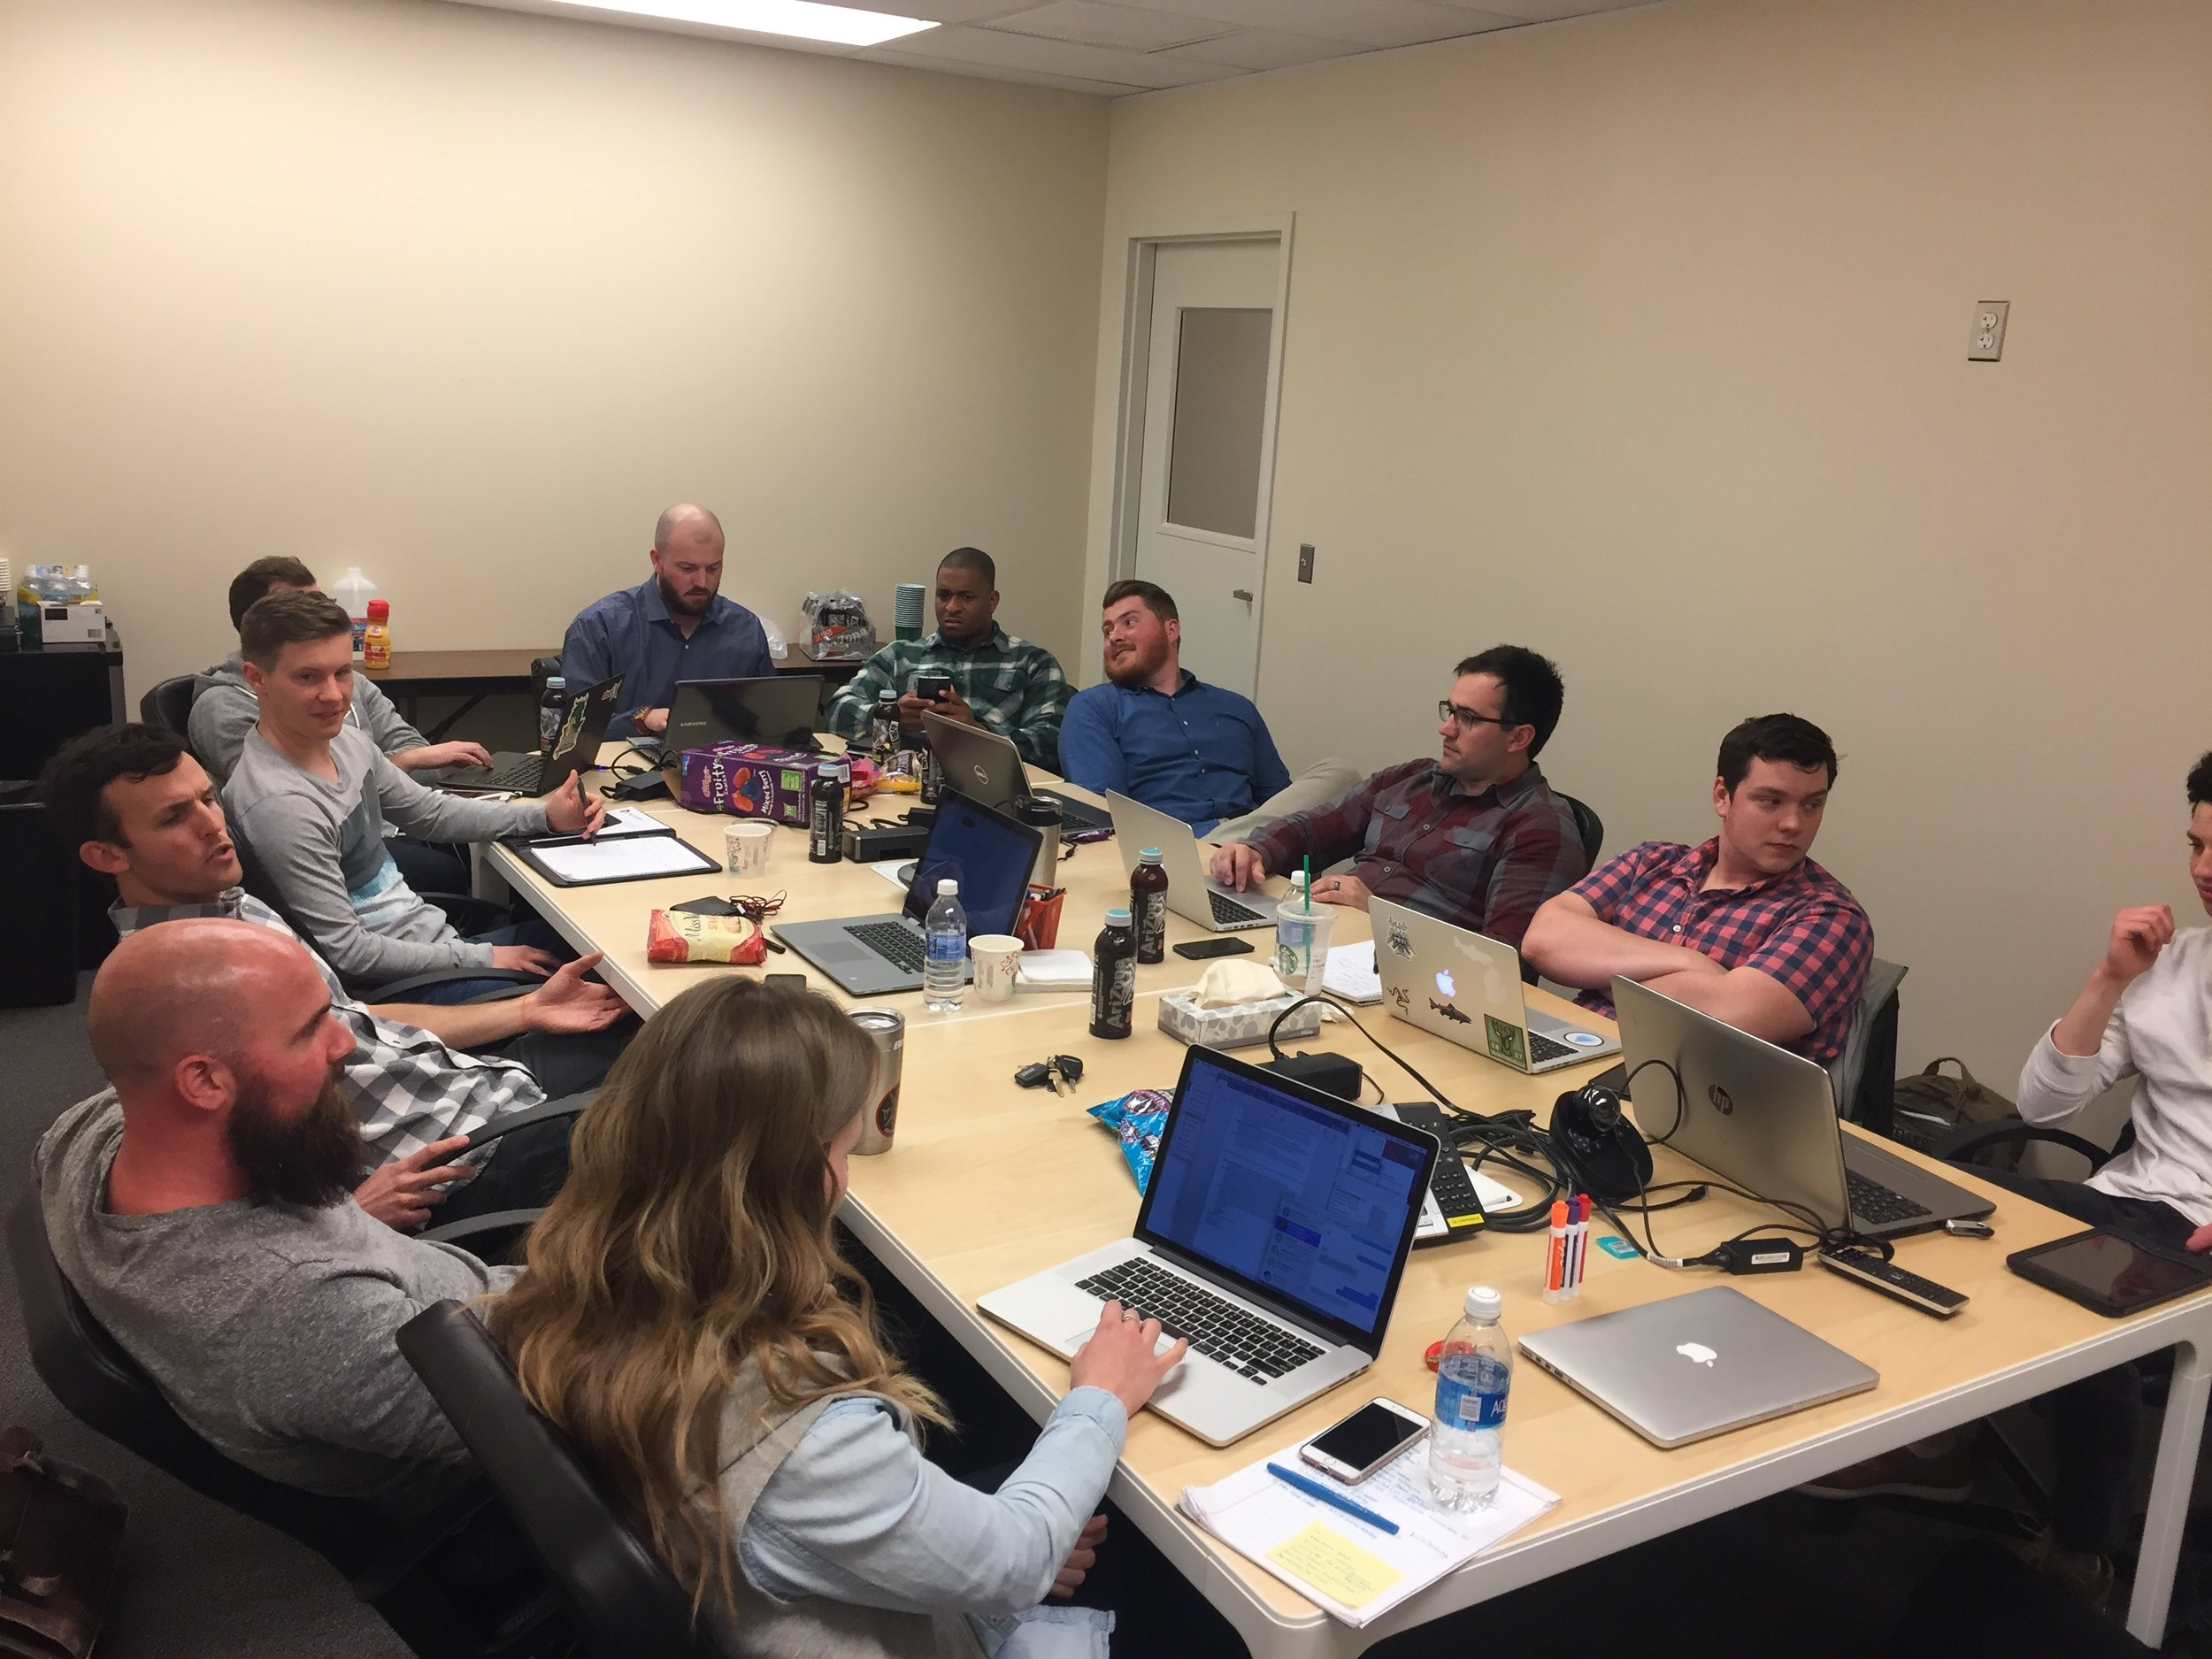 A few of staff that make up our multi-site student ministry team